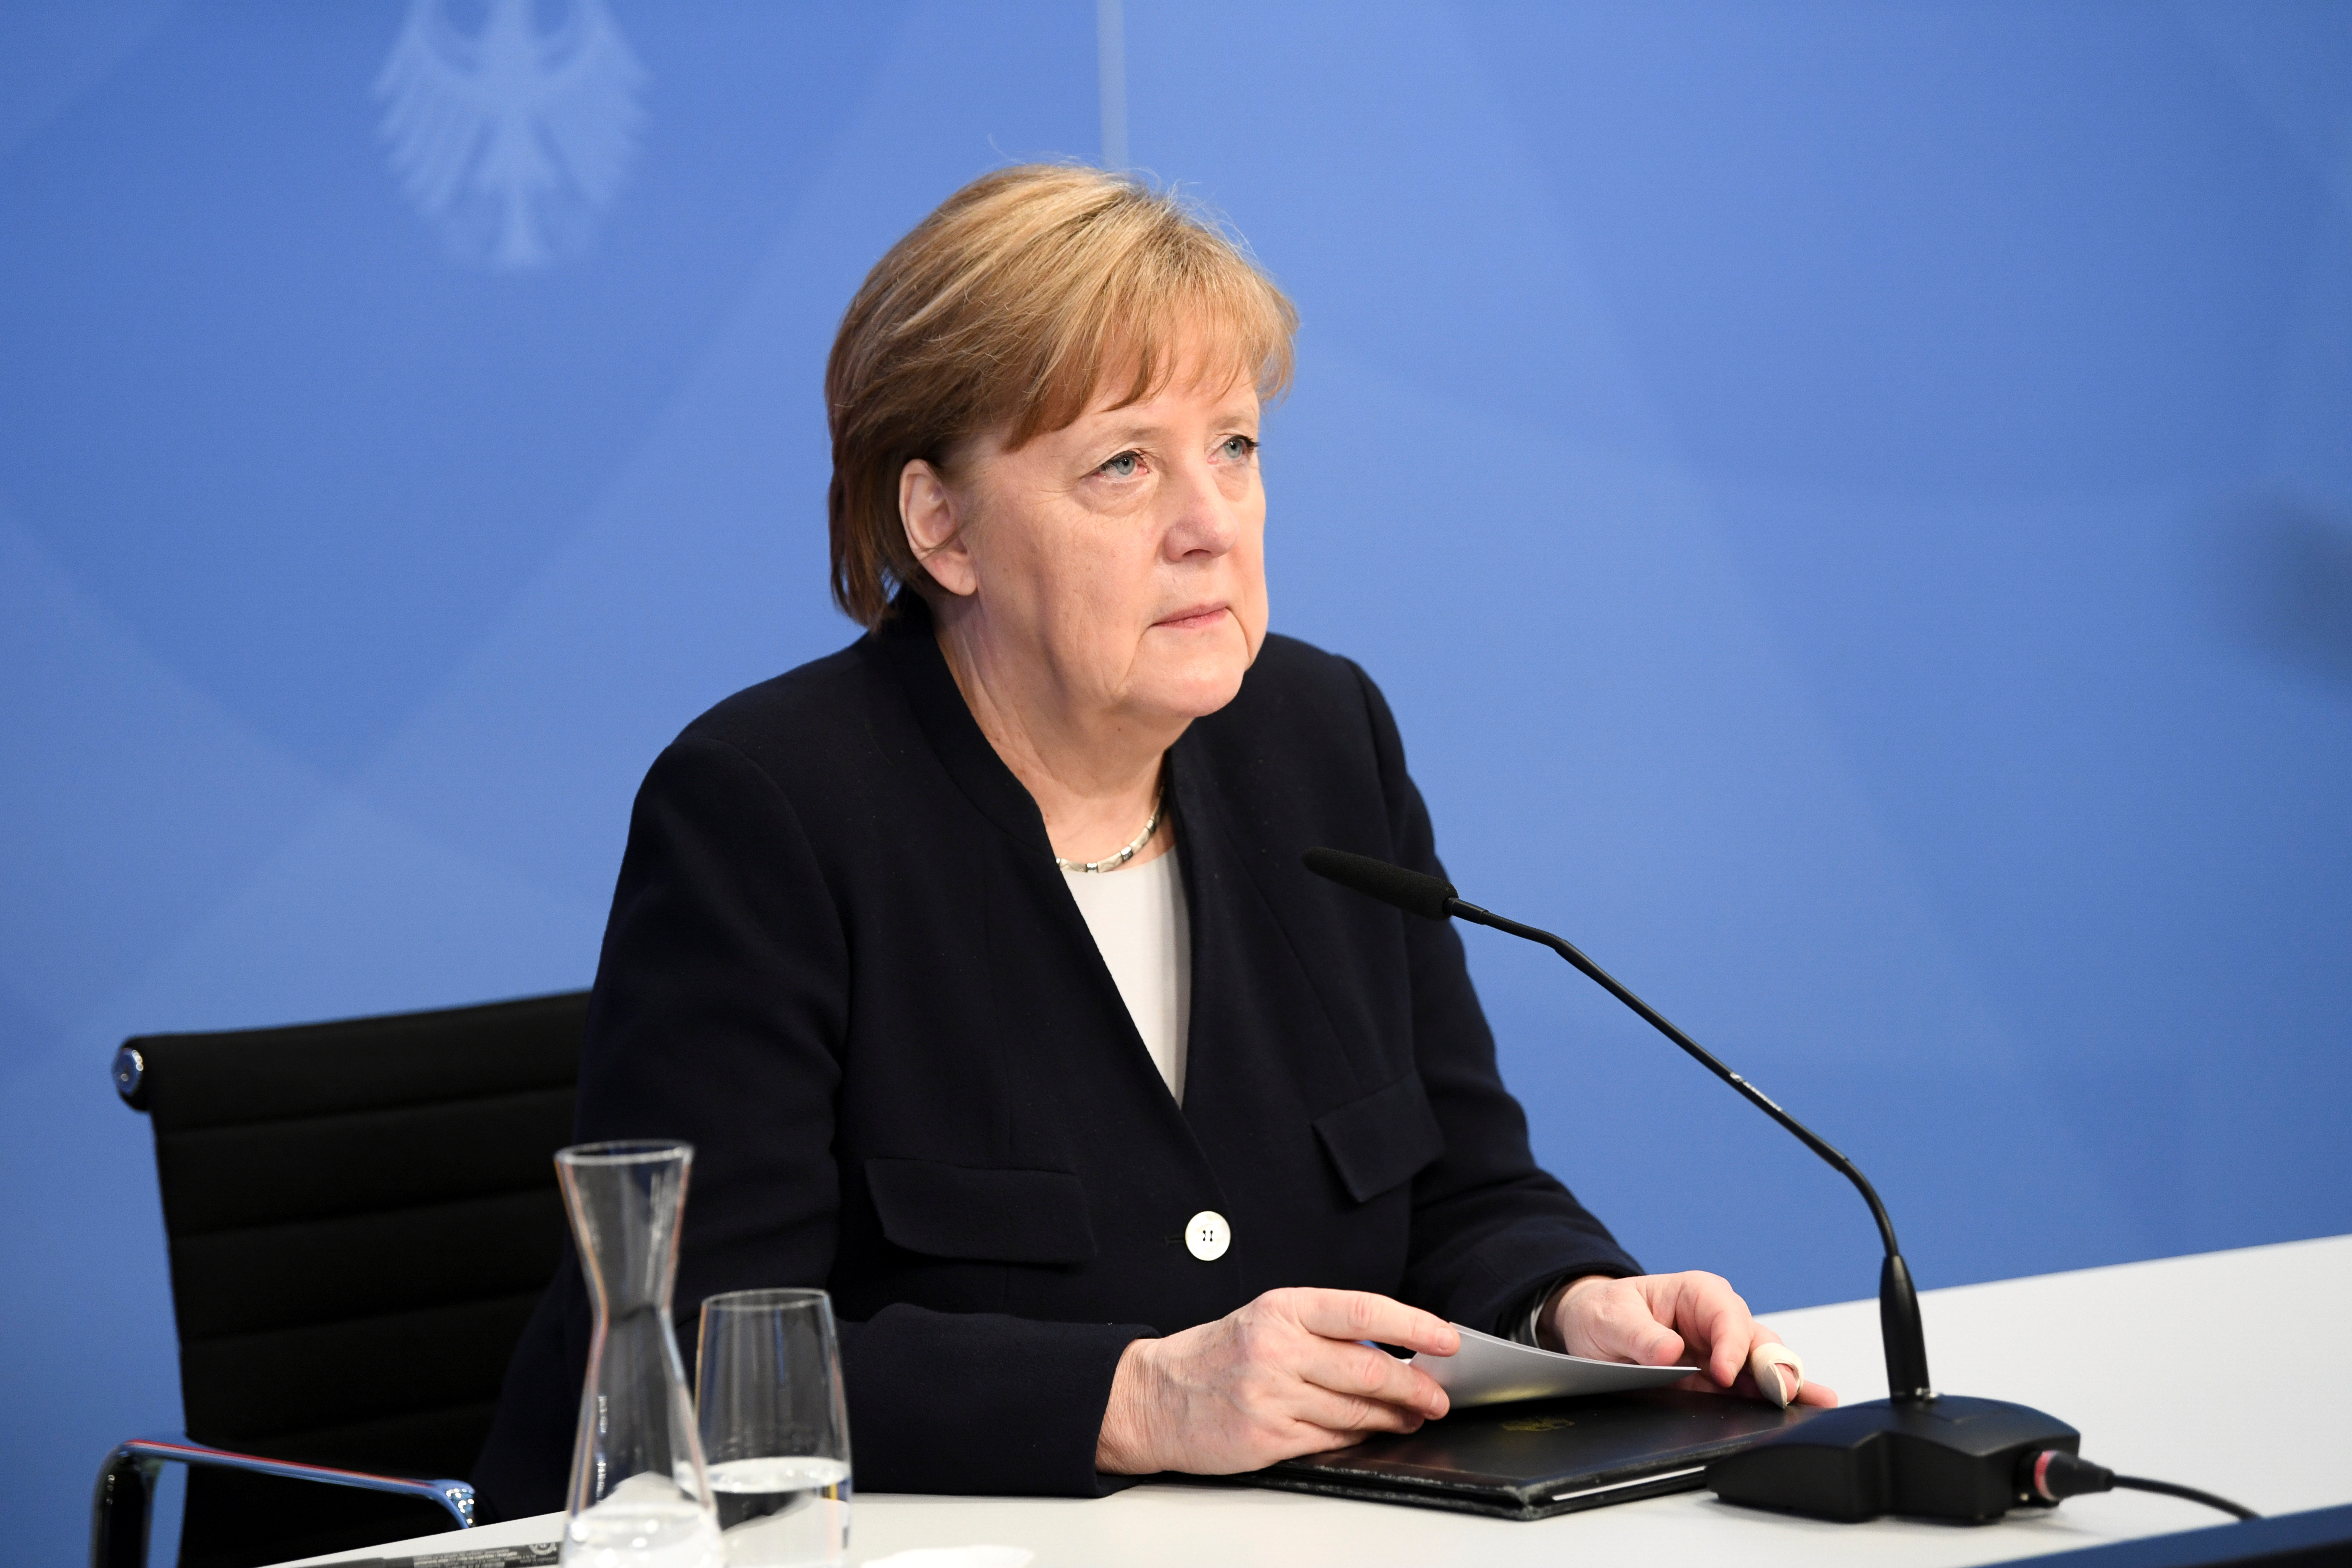 German Chancellor Angela Merkel sits down to attend a virtual event with Dutch Prime Minister Mark Rutte (not pictured) marking Liberation Day, the end of the occupation by Nazi Germany during World War Two, at the Chancellery in Berlin, Germany May 5, 2021. REUTERS/Annegret Hilse/Pool